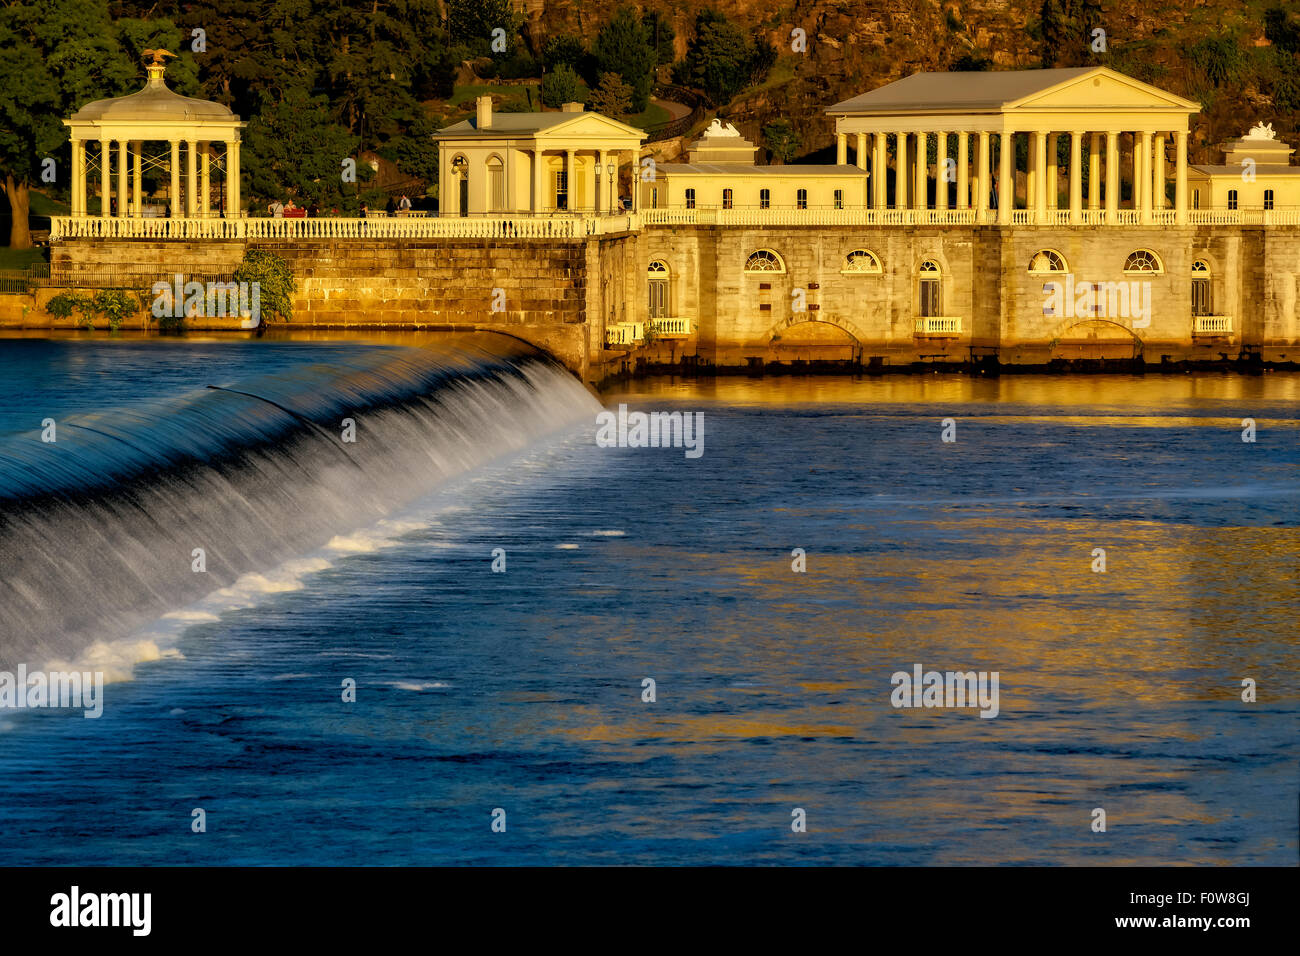 Fairmount Park and the waters of the Fairmount Water Works on the Schuylkill river dam in Philadelphia, Pennsylvania. - Stock Image